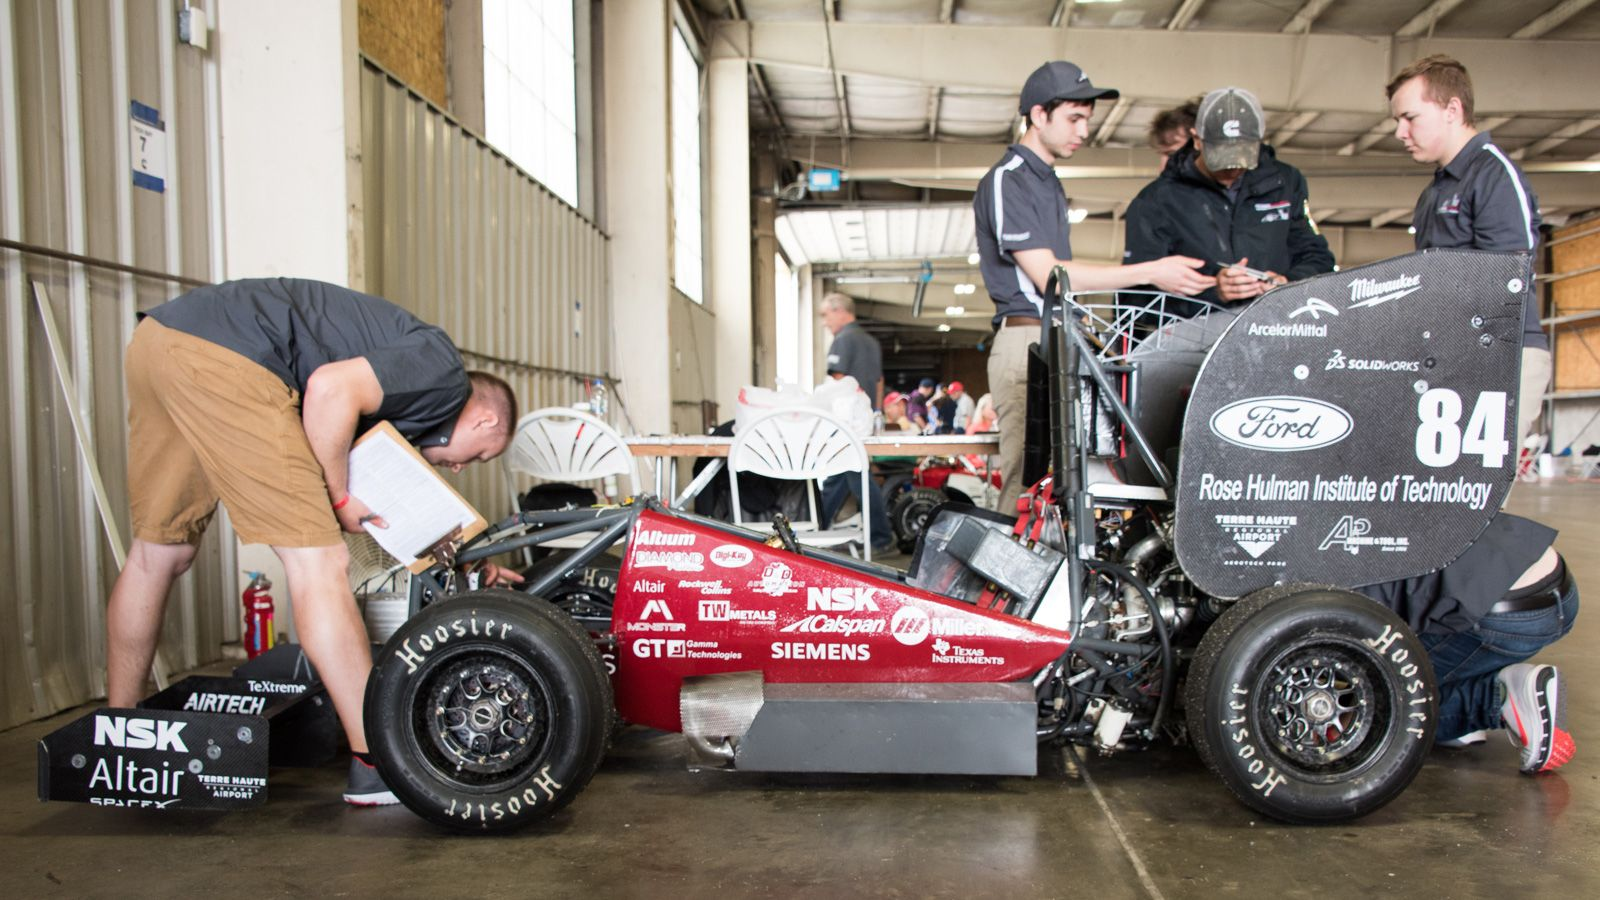 How To Get Into Racing Formula Sae Opens Doors On The Tech Side